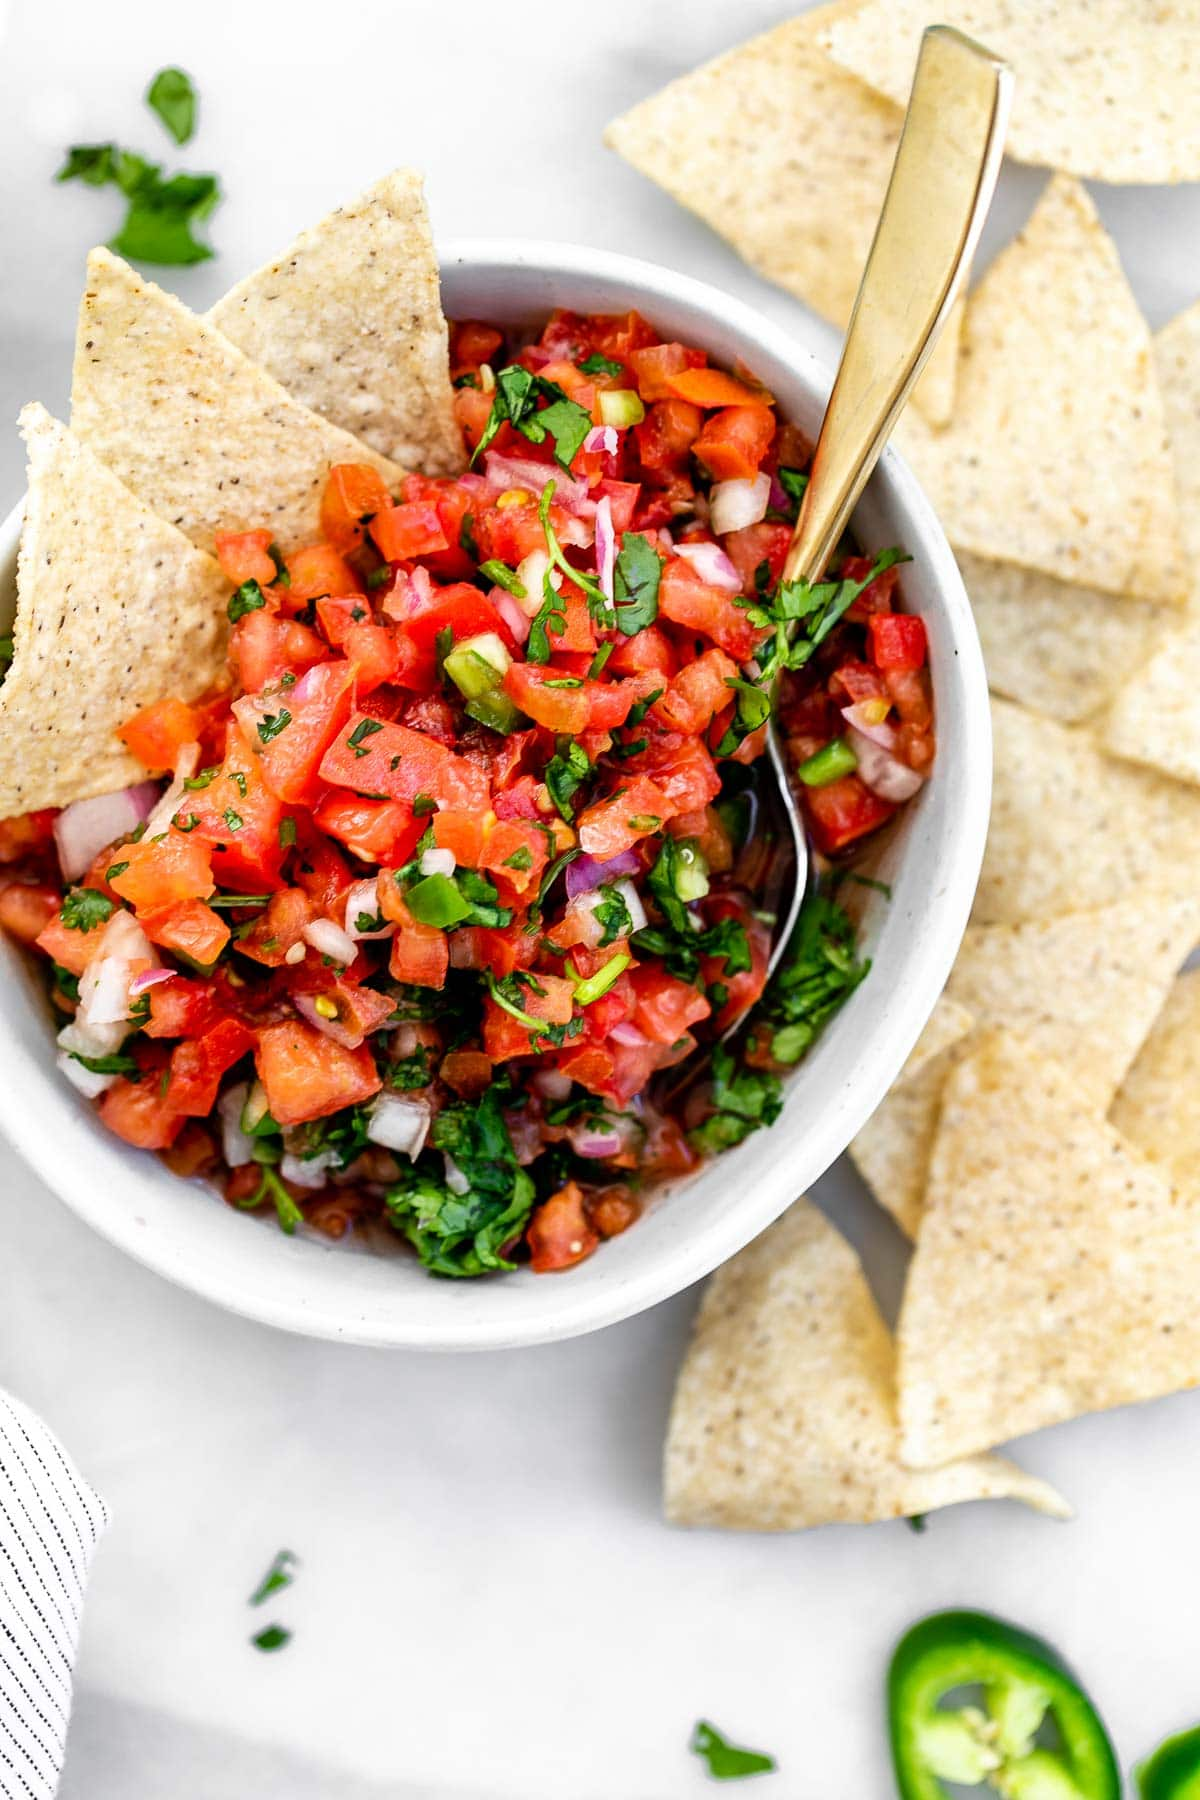 Overhead shot of the pico de gallo with a spoon on the side with chips.